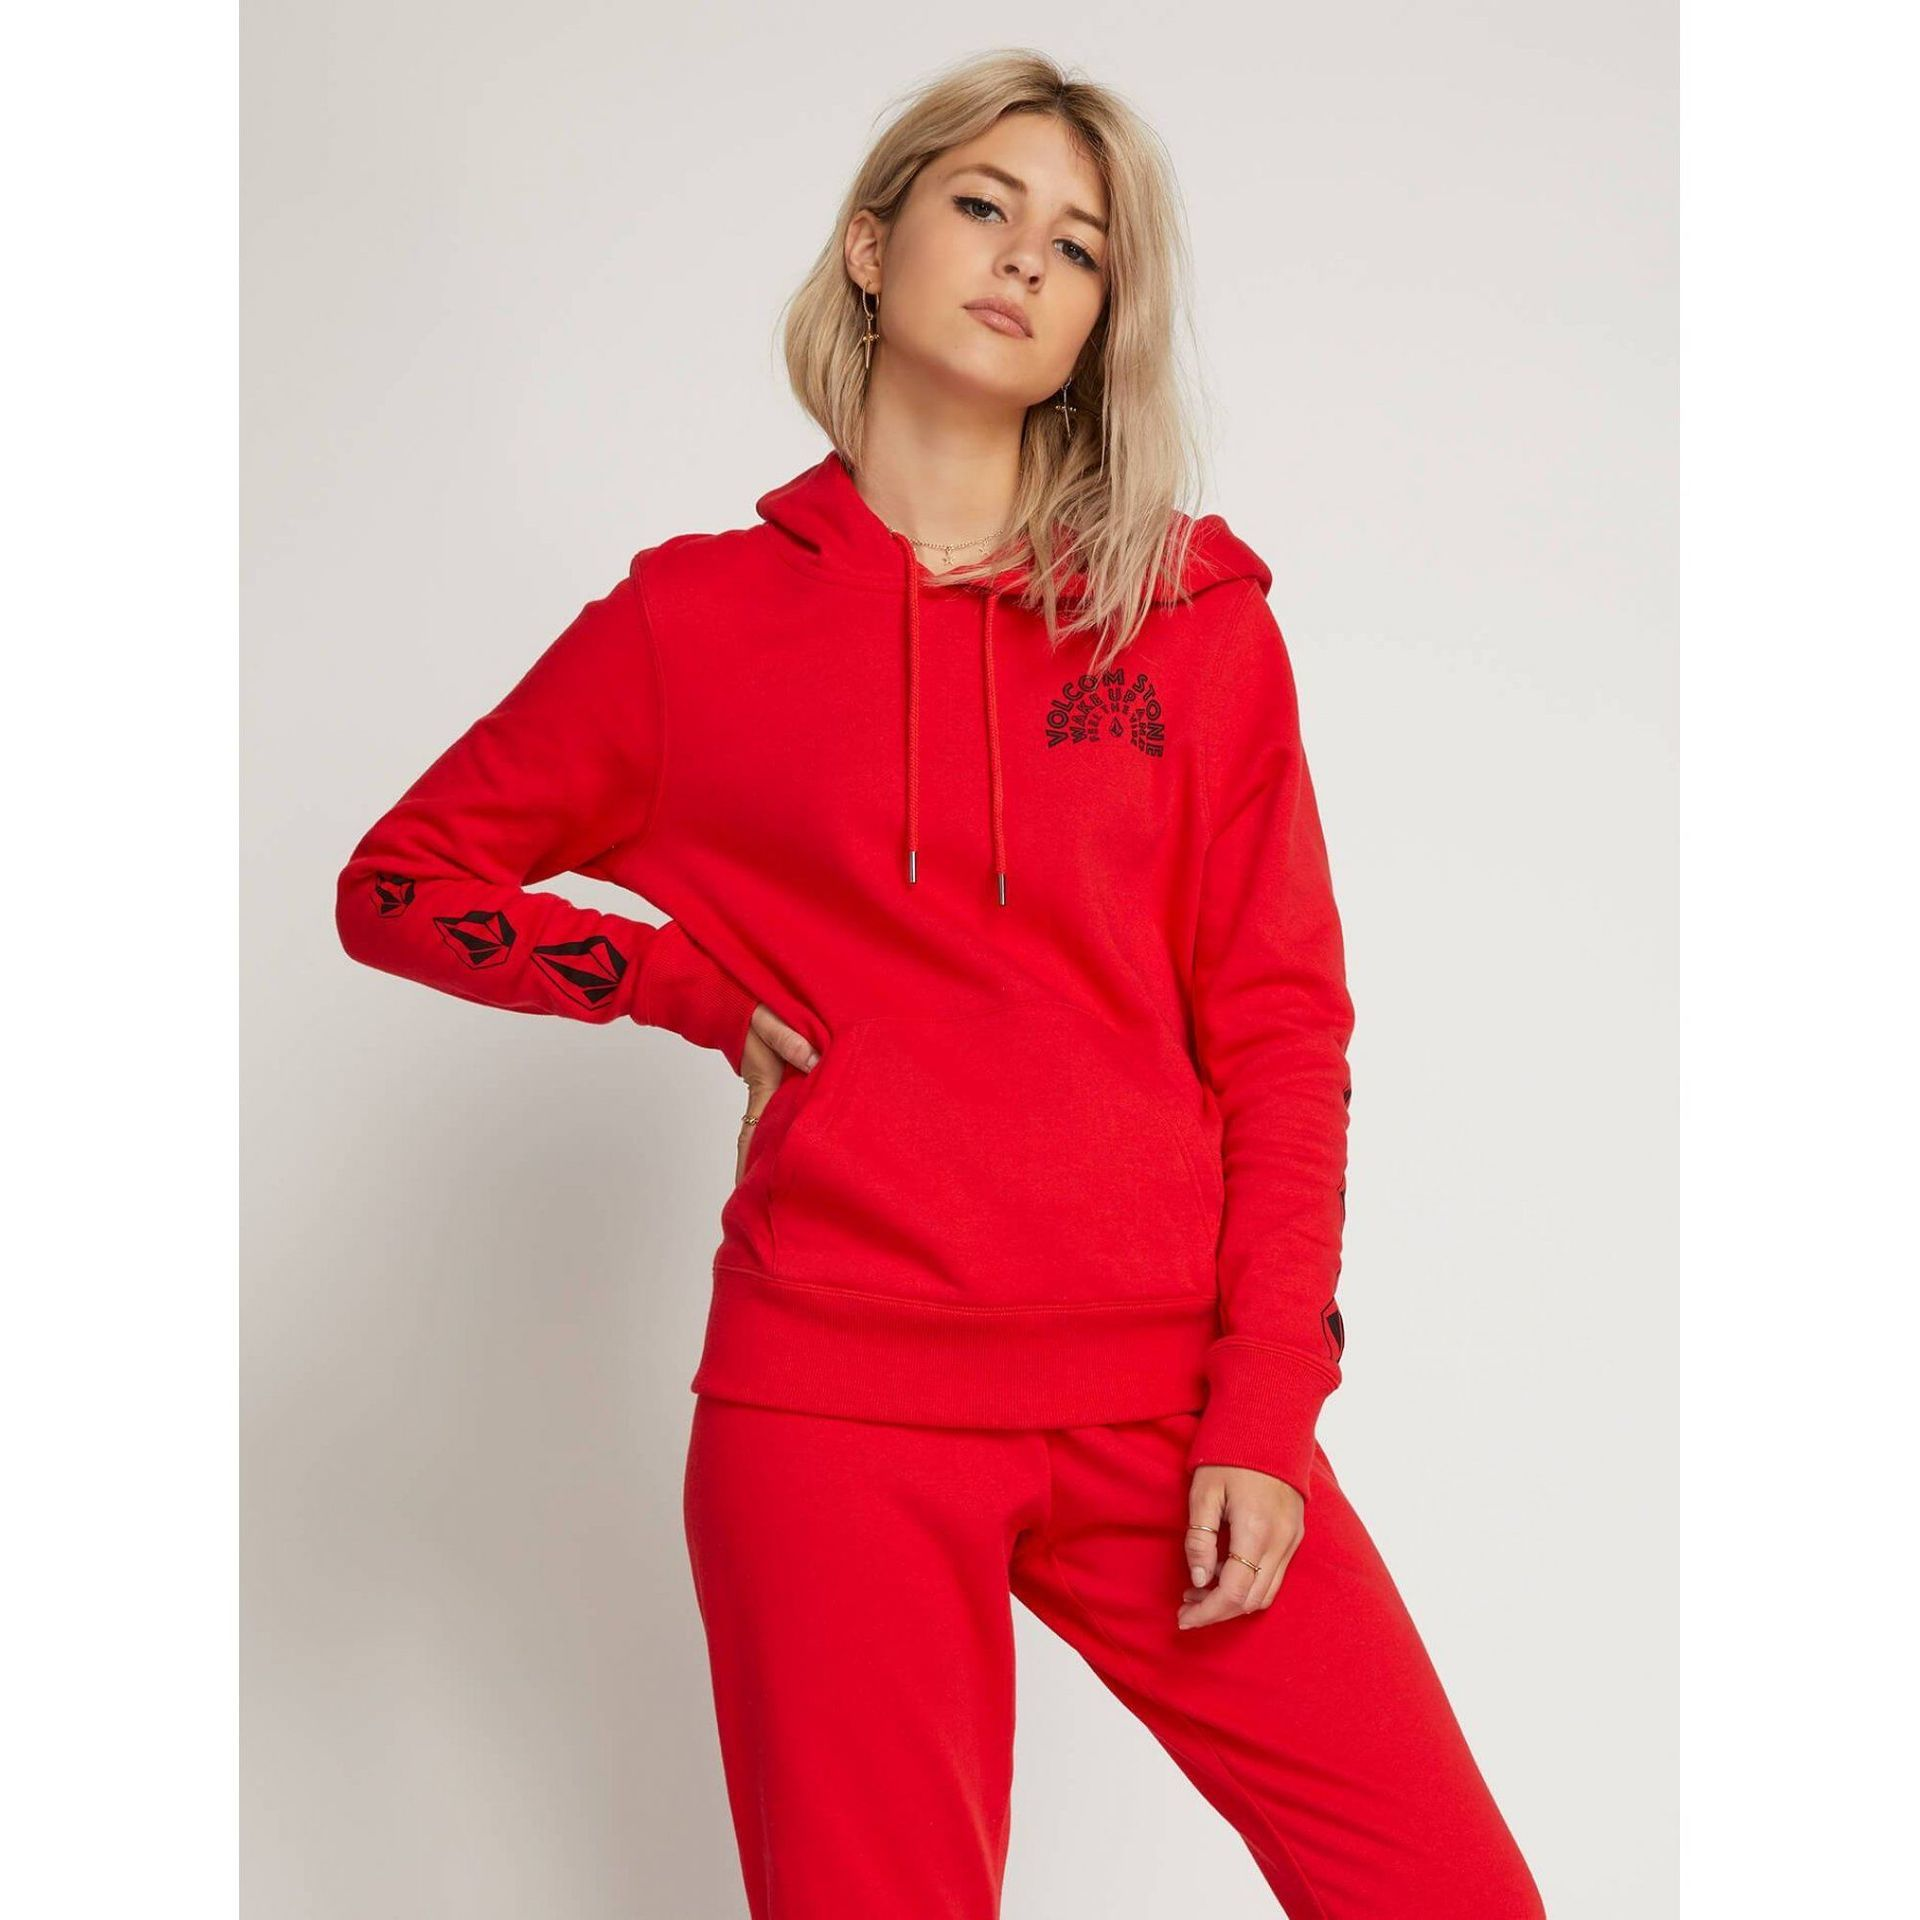 BLUZA VOLCOM VOL STONE B3111901-RED 1